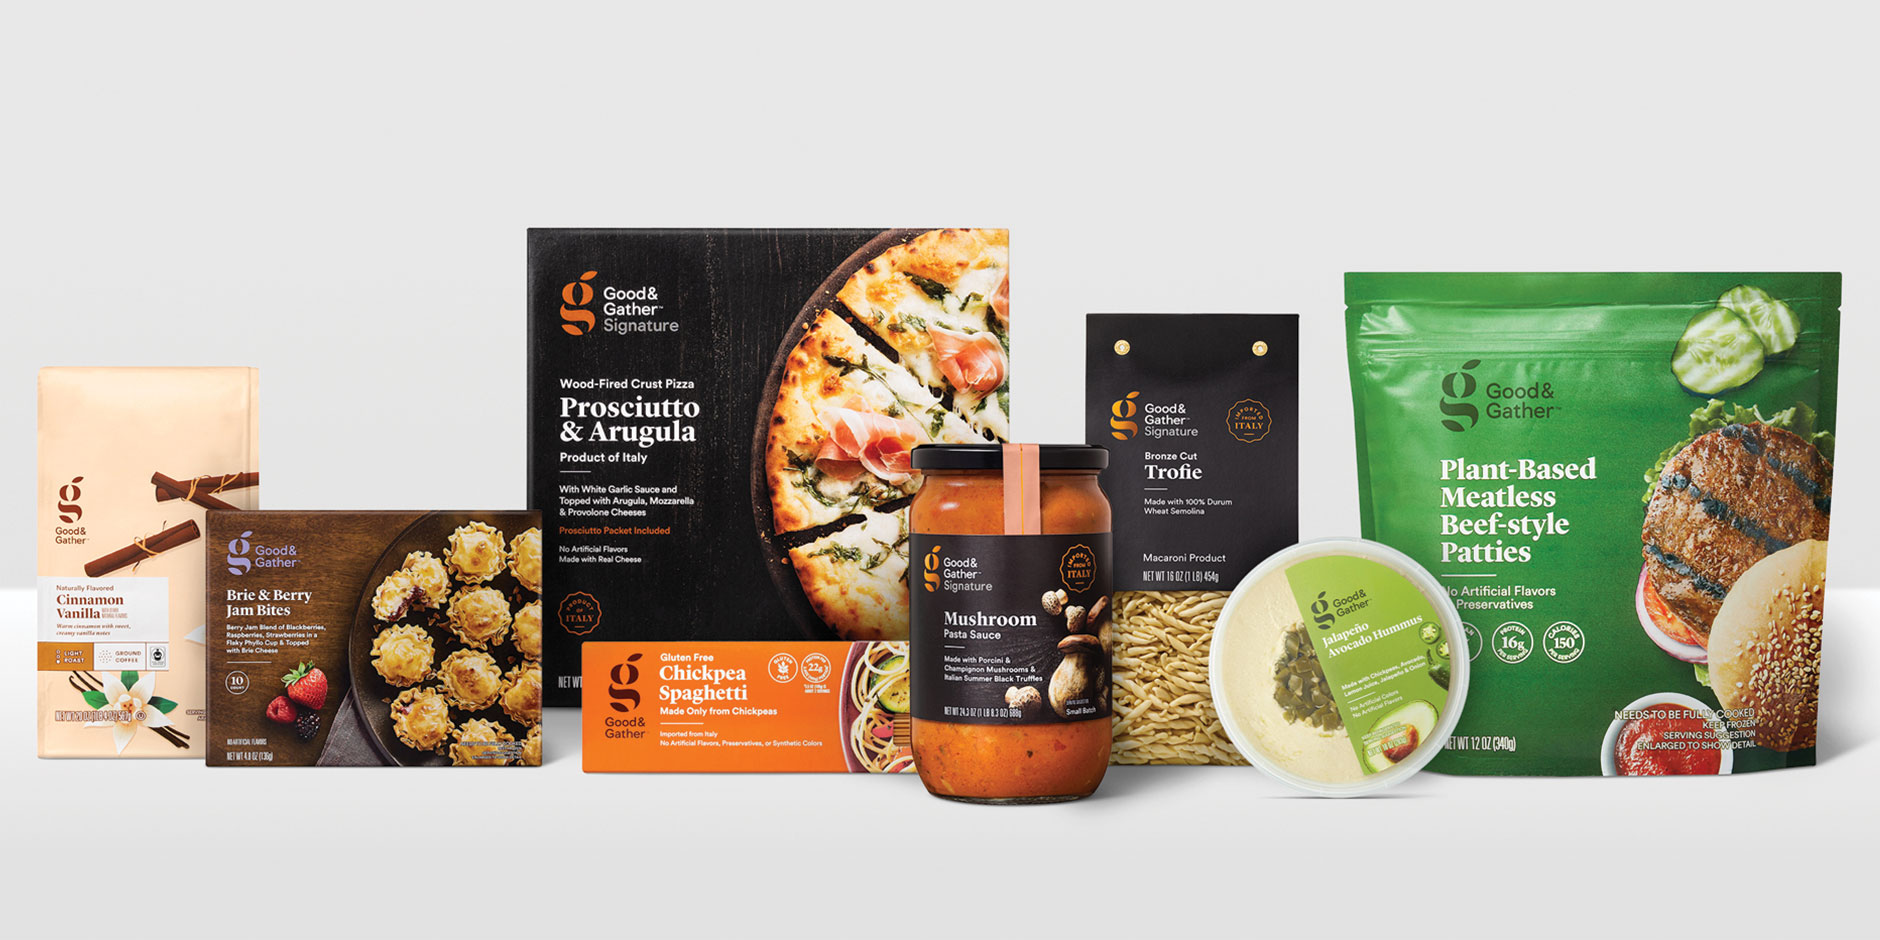 A variety of new Good and Gather products, including coffee, Brie bites, pizza, spaghetti and more